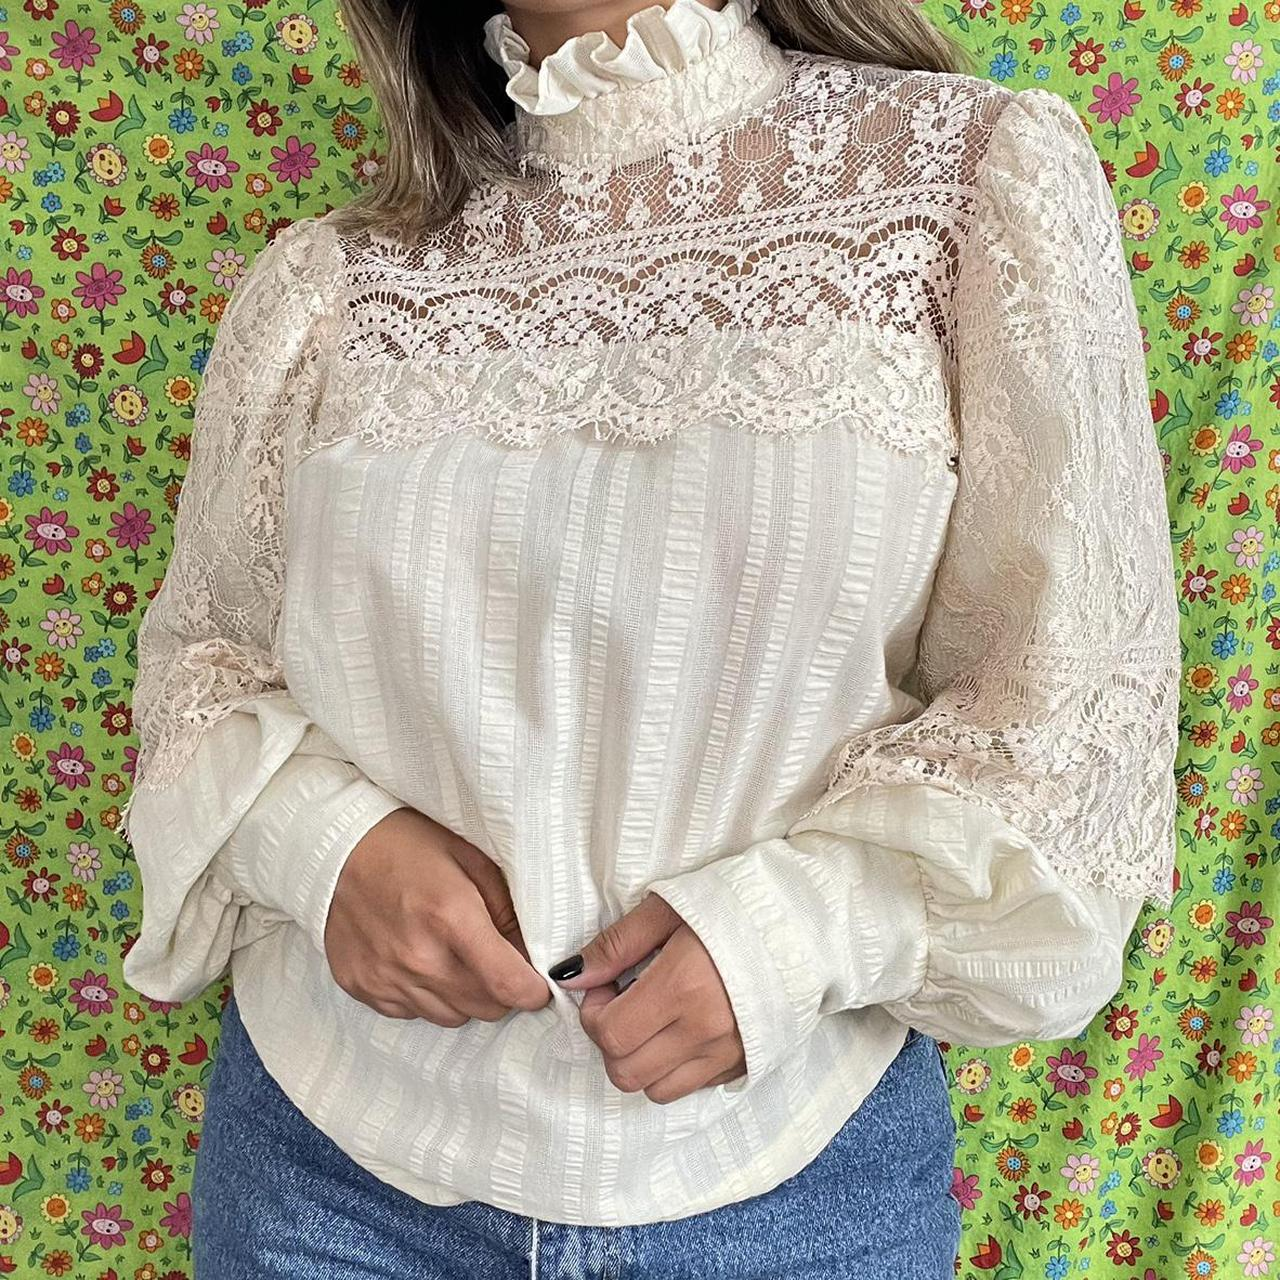 Product Image 1 - Vintage Ivory Lace Blouse -balloon sleeves -buttons